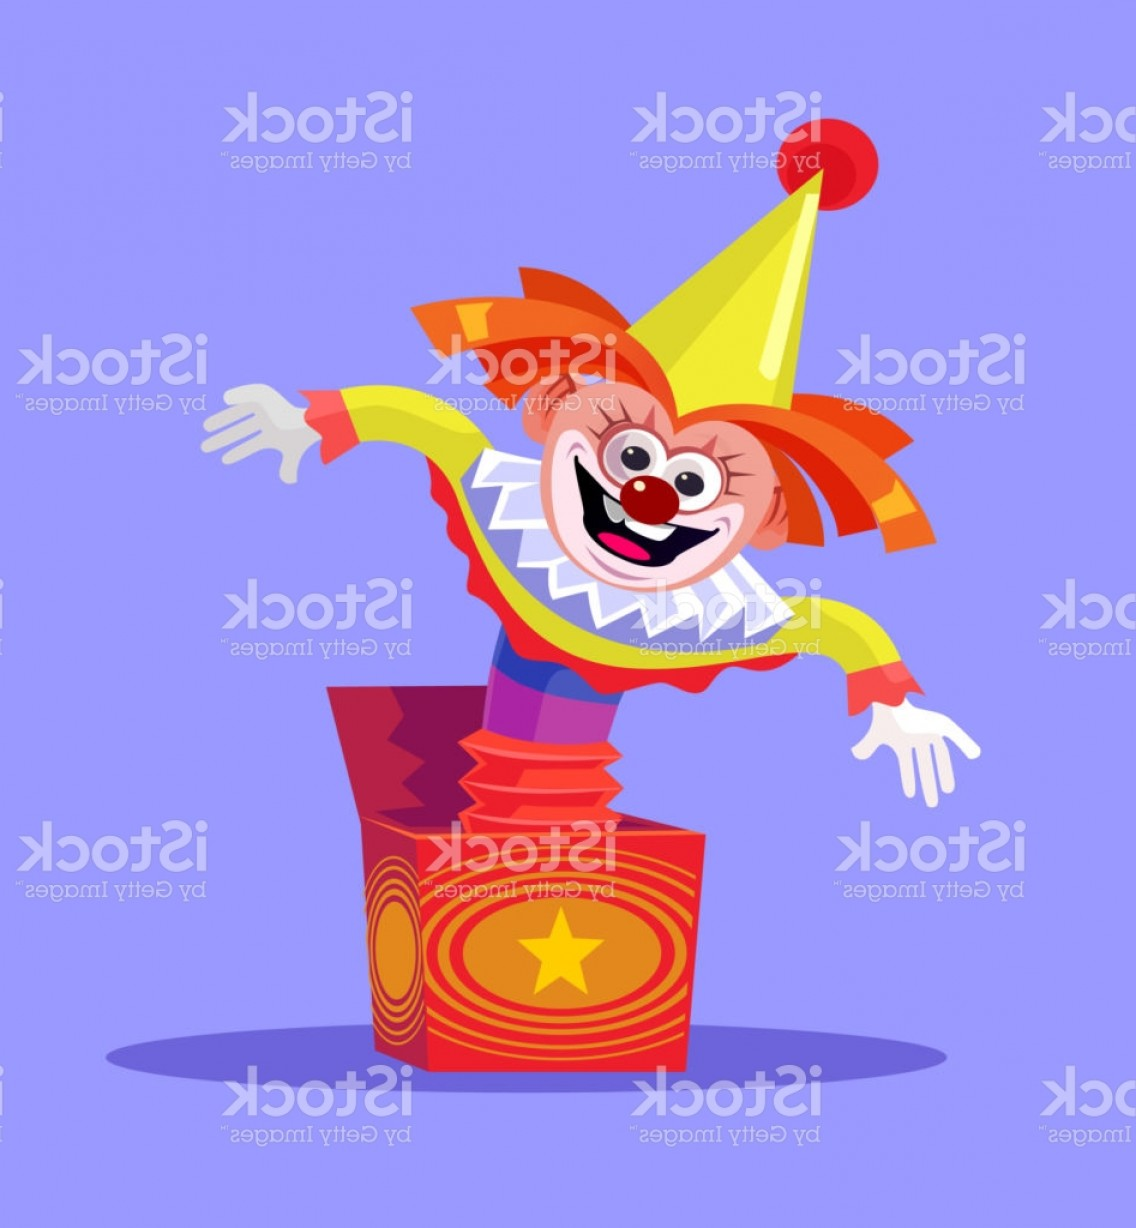 Joker Smile Vector Art: Funny Comic Smiling Clown Joker Jack Toy Jumping In Box Gm